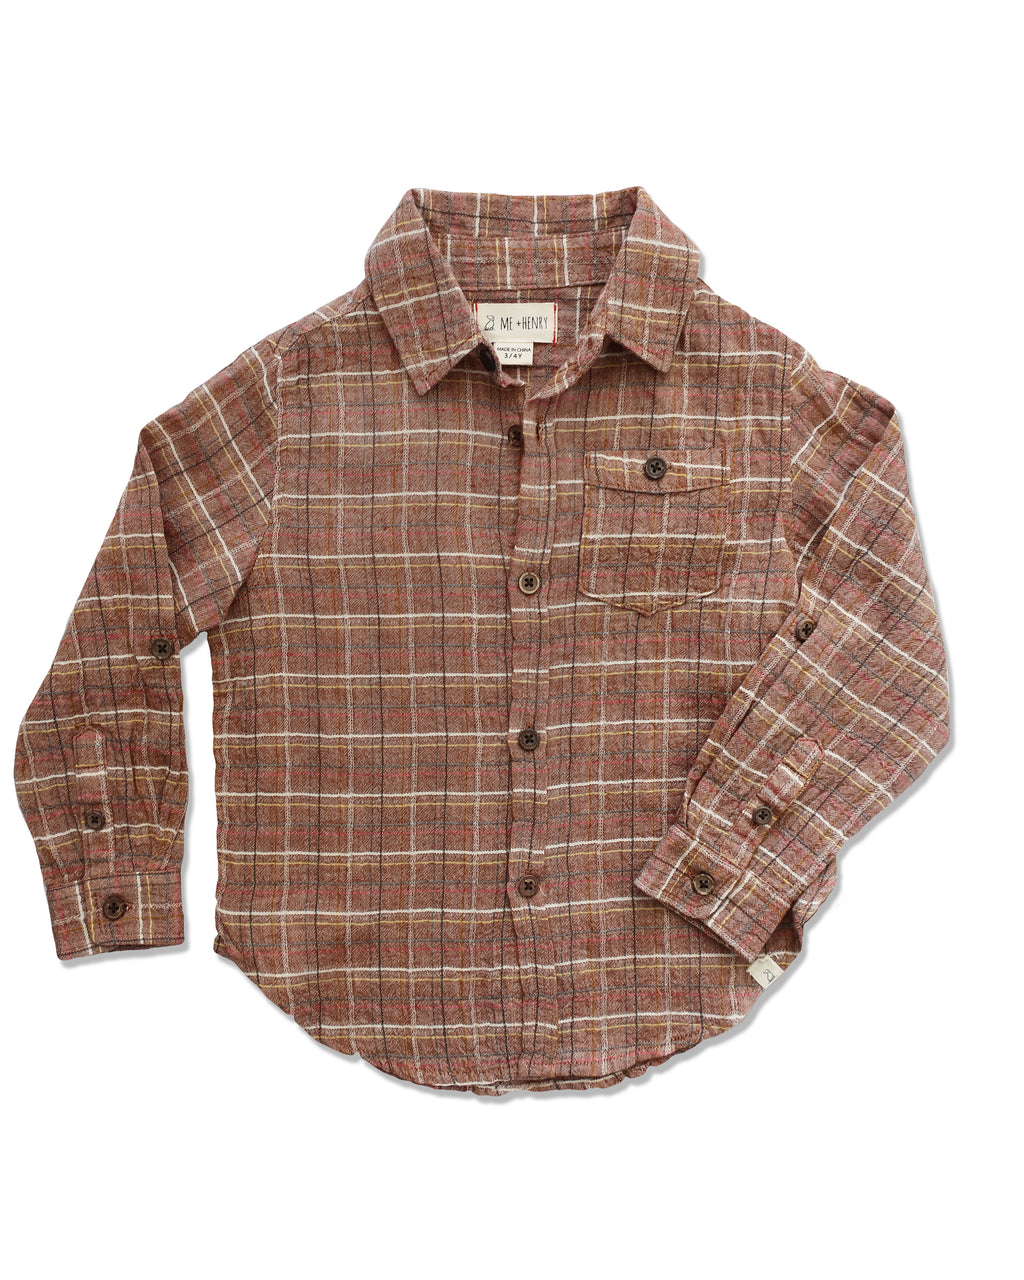 front image of boys cotton long sleeved brown plaid shirt